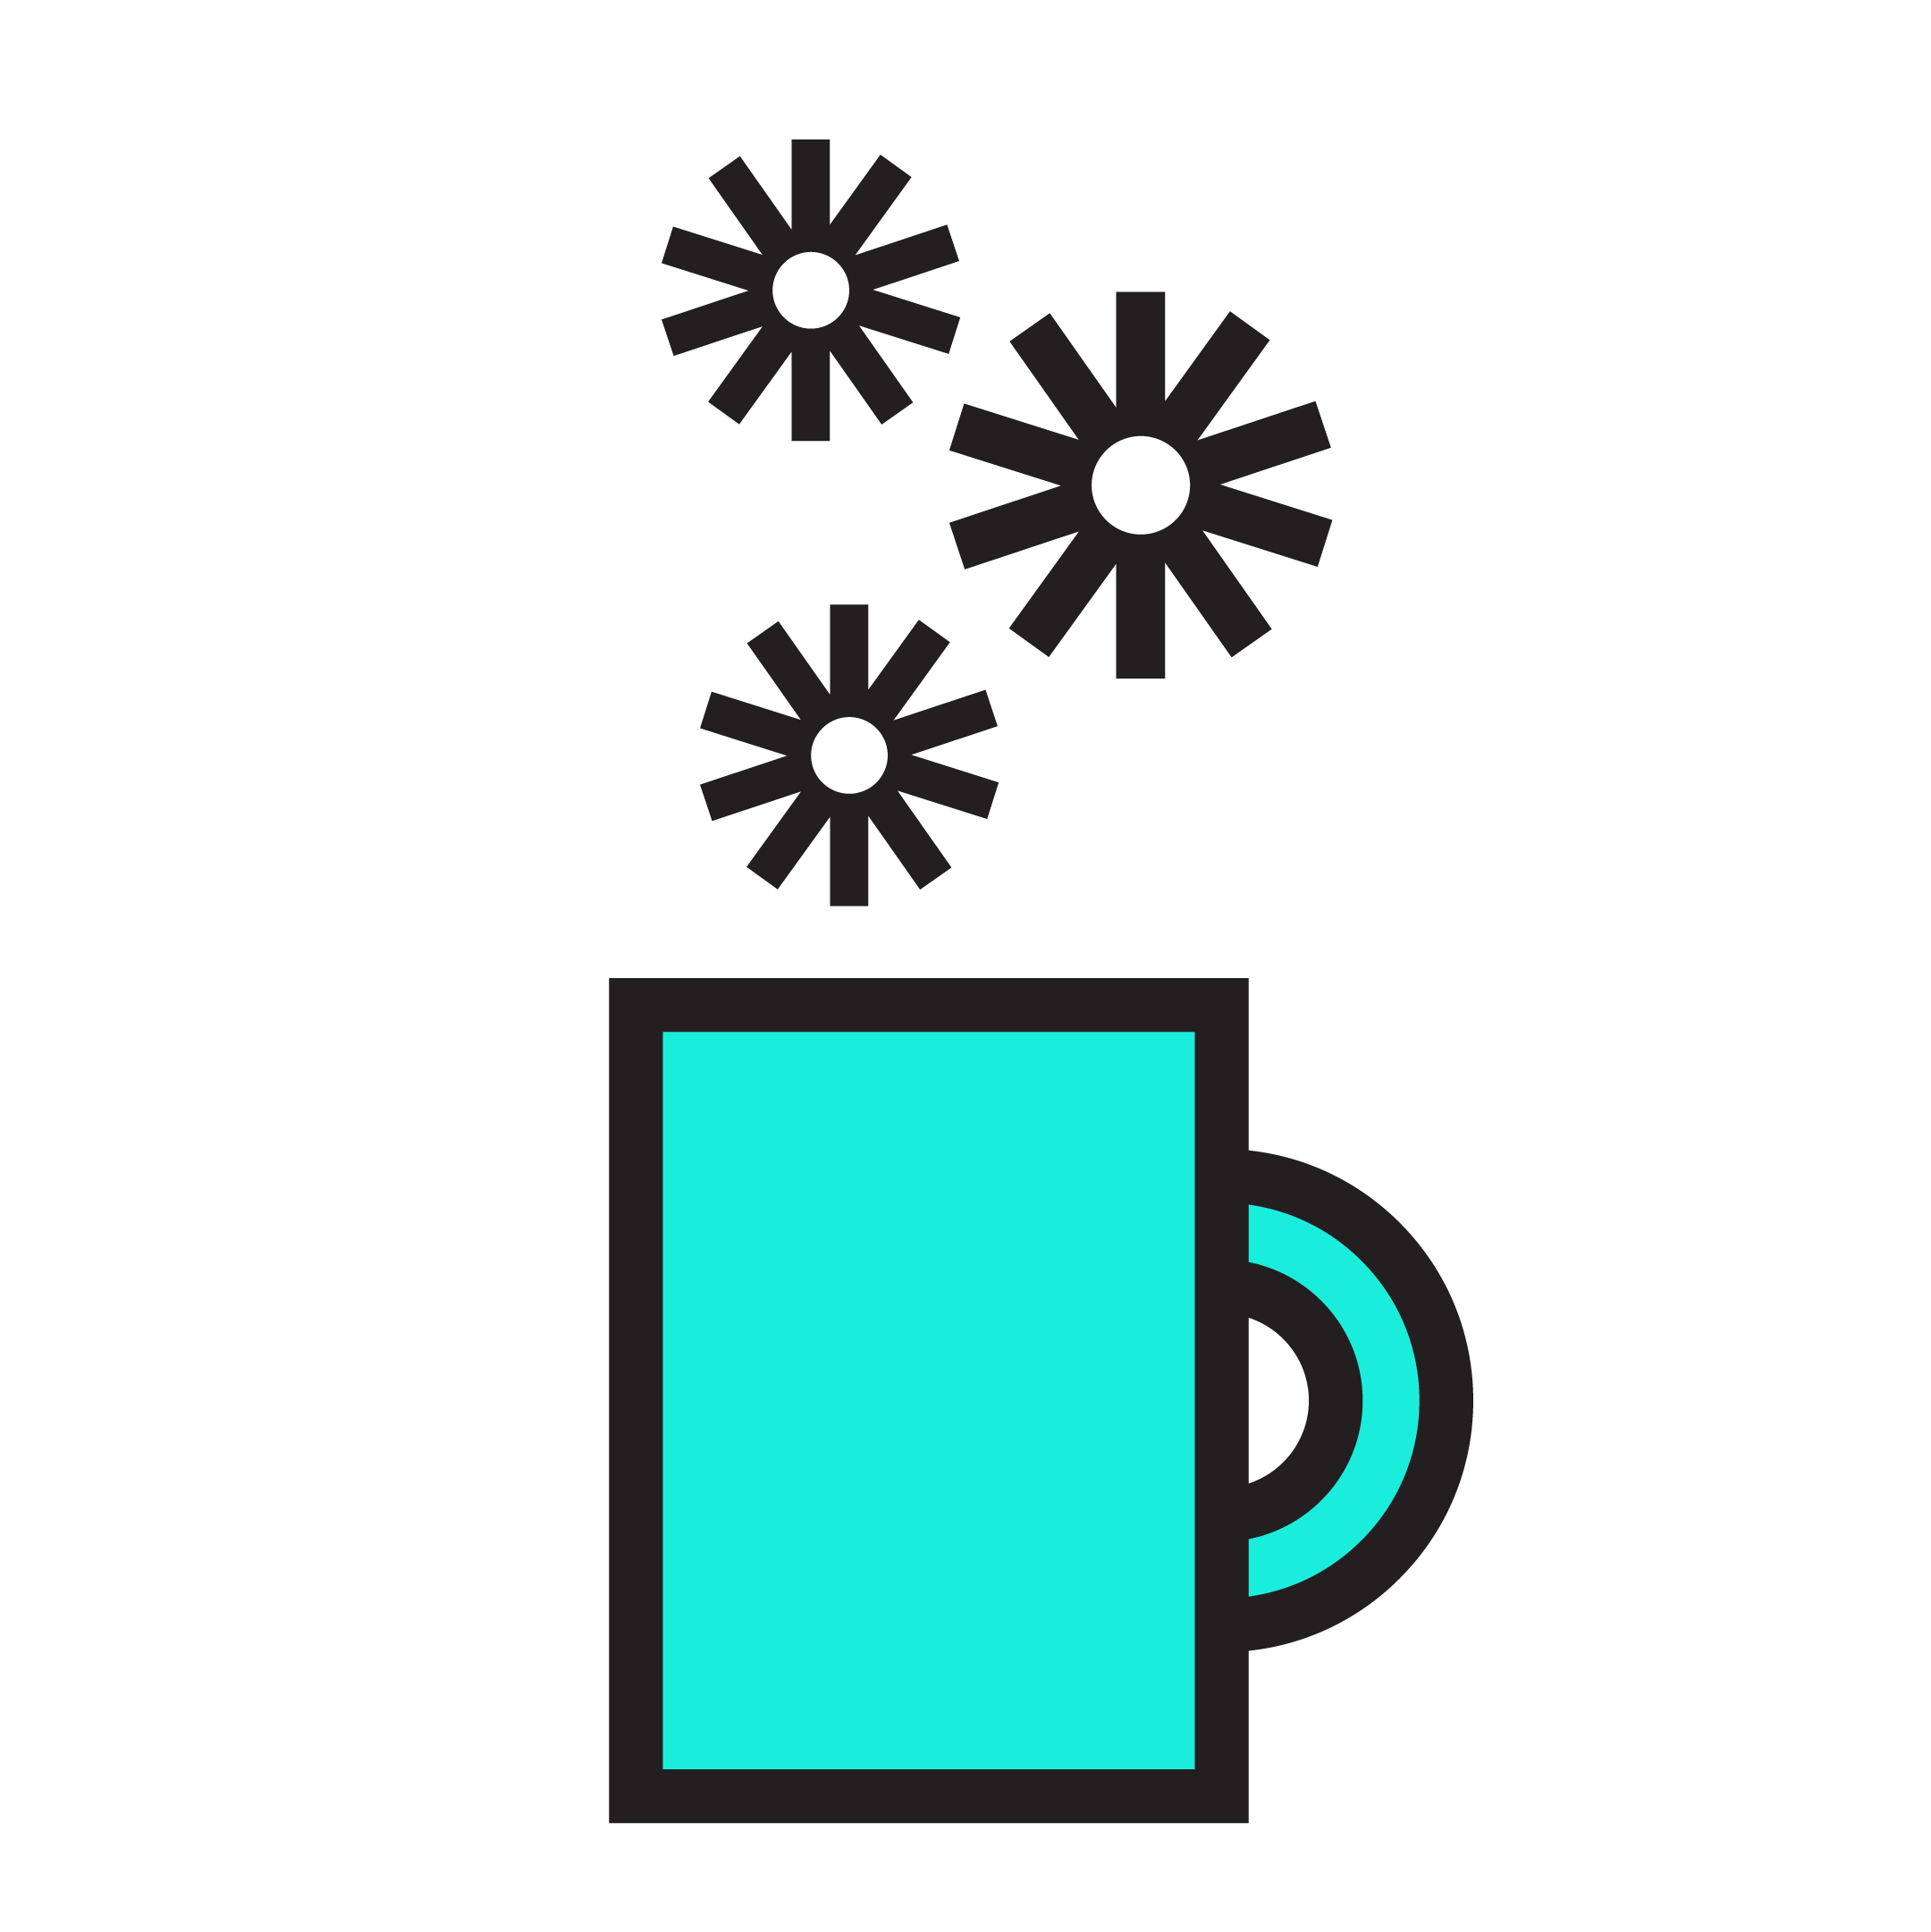 A coffee mug illustration. Floating above it are 3 of GMCDP's motif's.